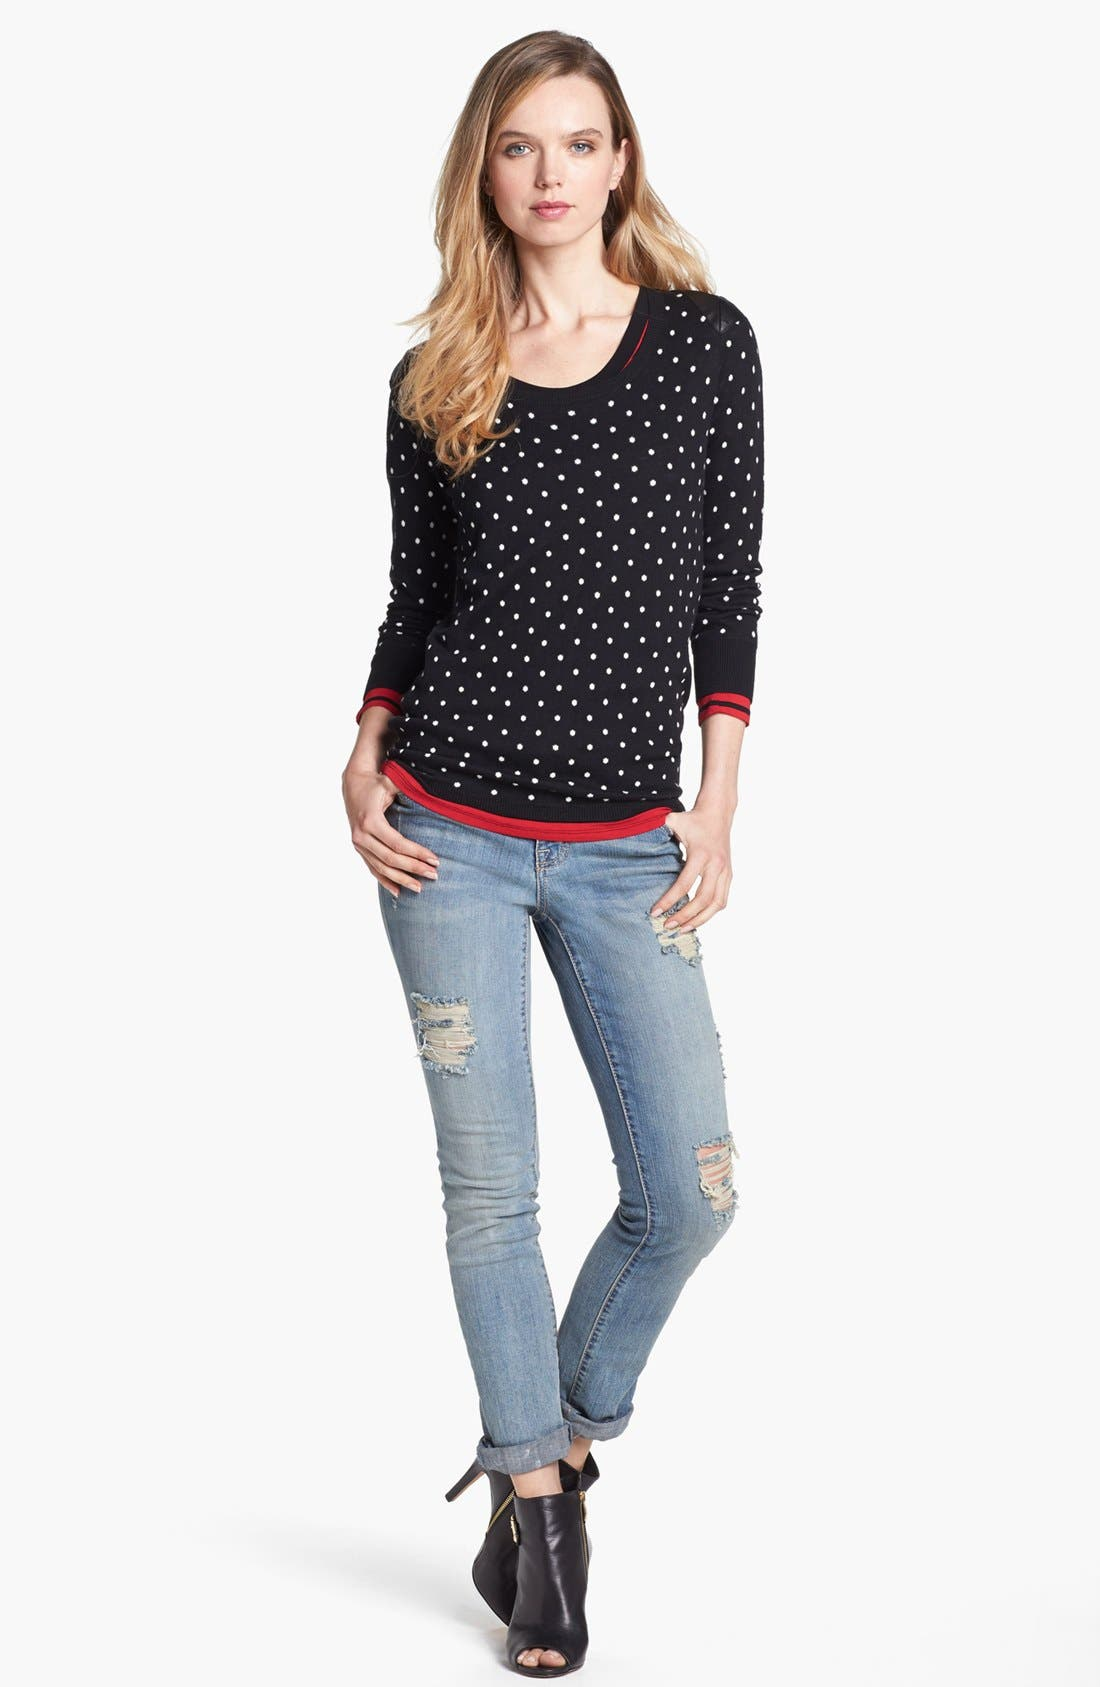 Alternate Image 1 Selected - Two by Vince Camuto Faux Leather Shoulder Dot Sweater